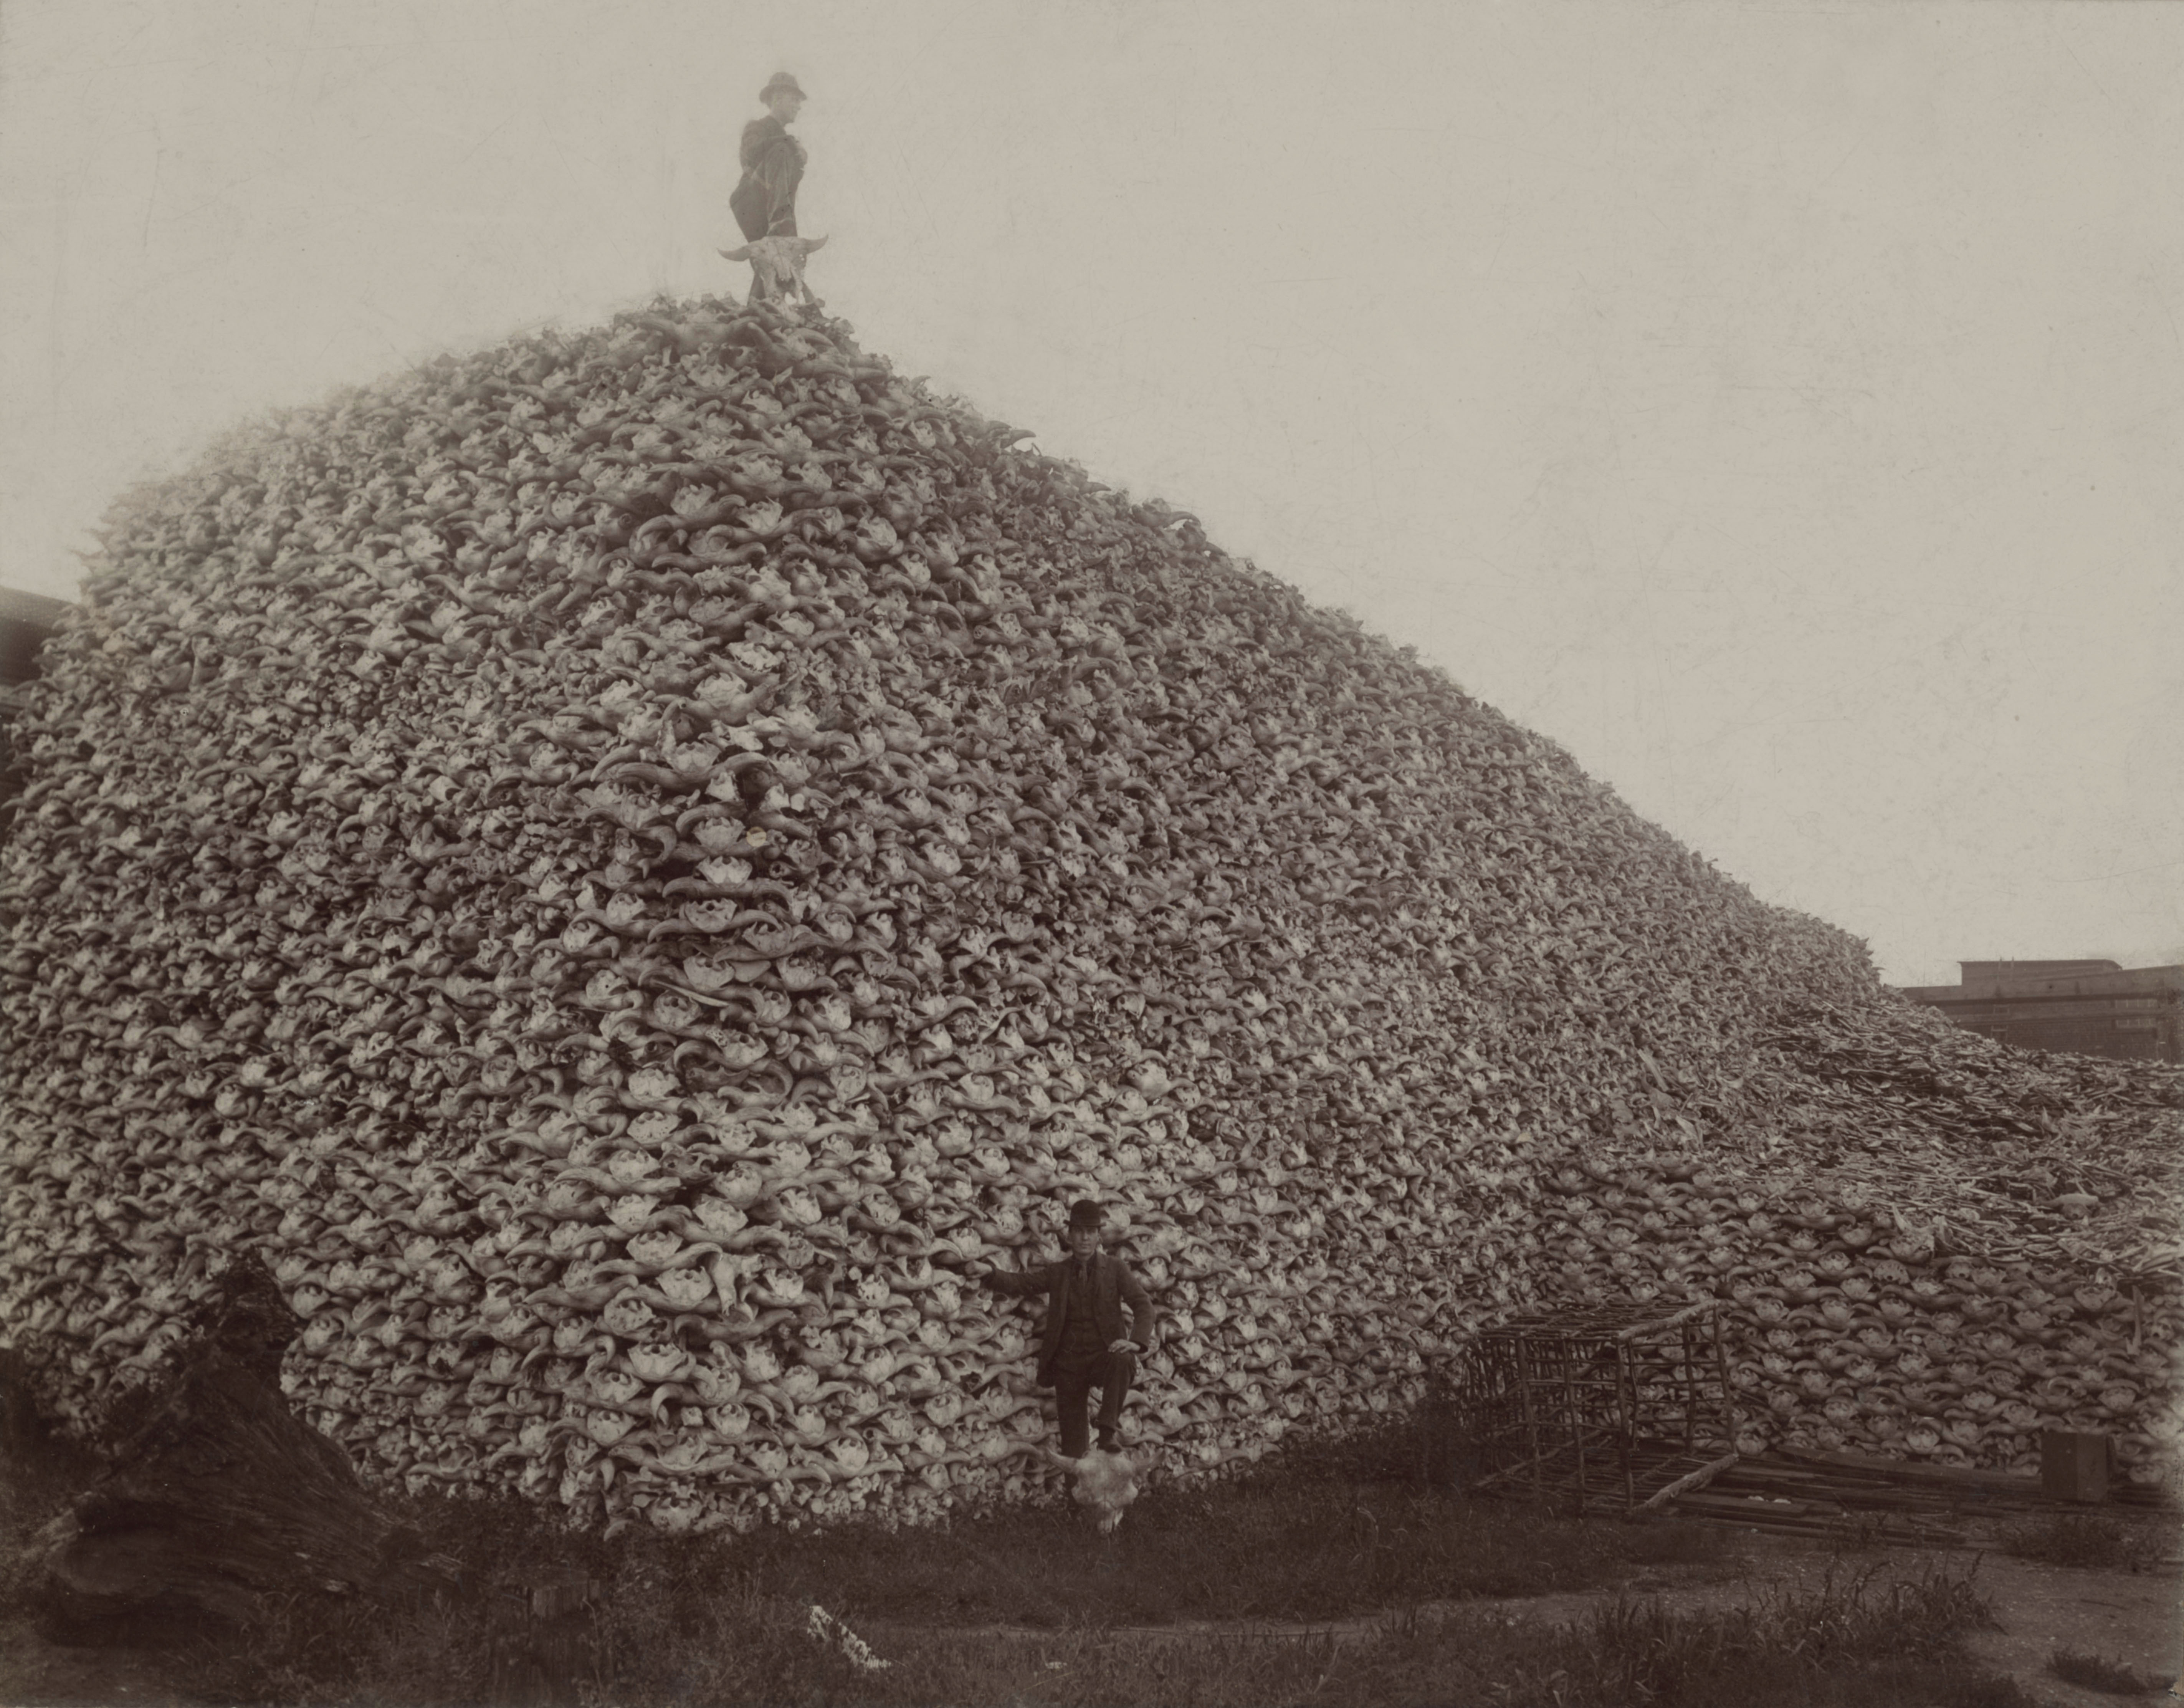 Cheyenne Indians and the Ghost Dance&nbspTerm Paper